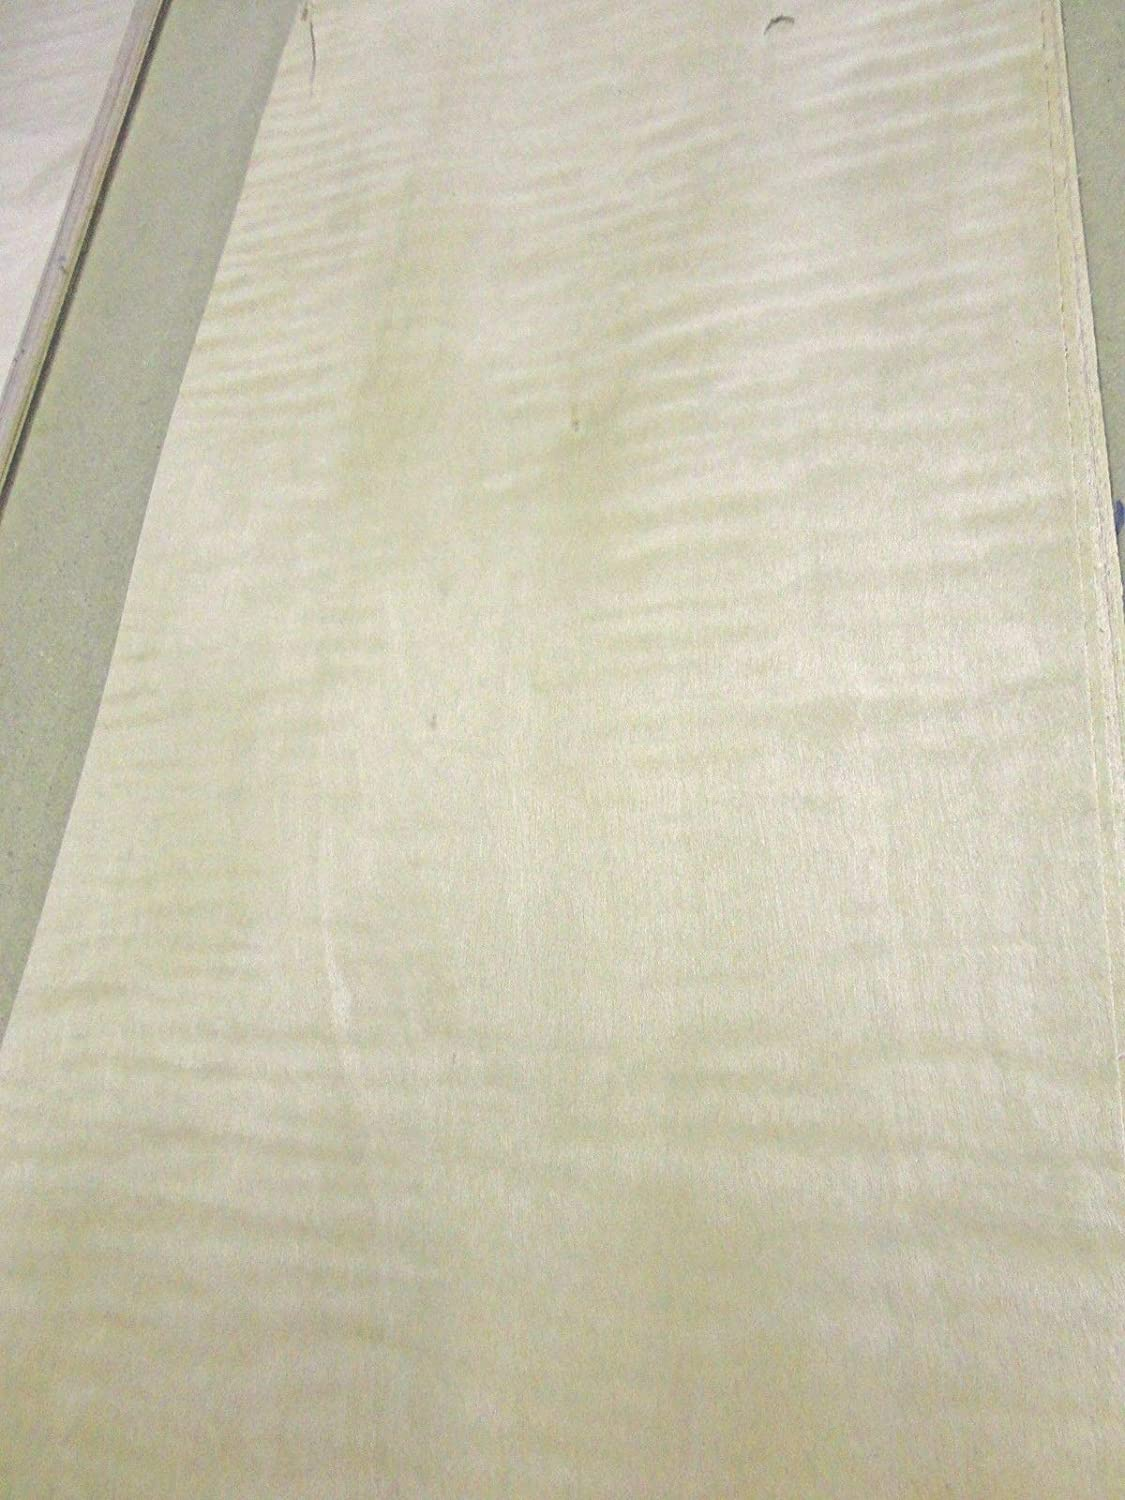 Curly Maple figured quilted wood veneer 7' x 37' raw no backing 1/42' thickness JSO Wood Products